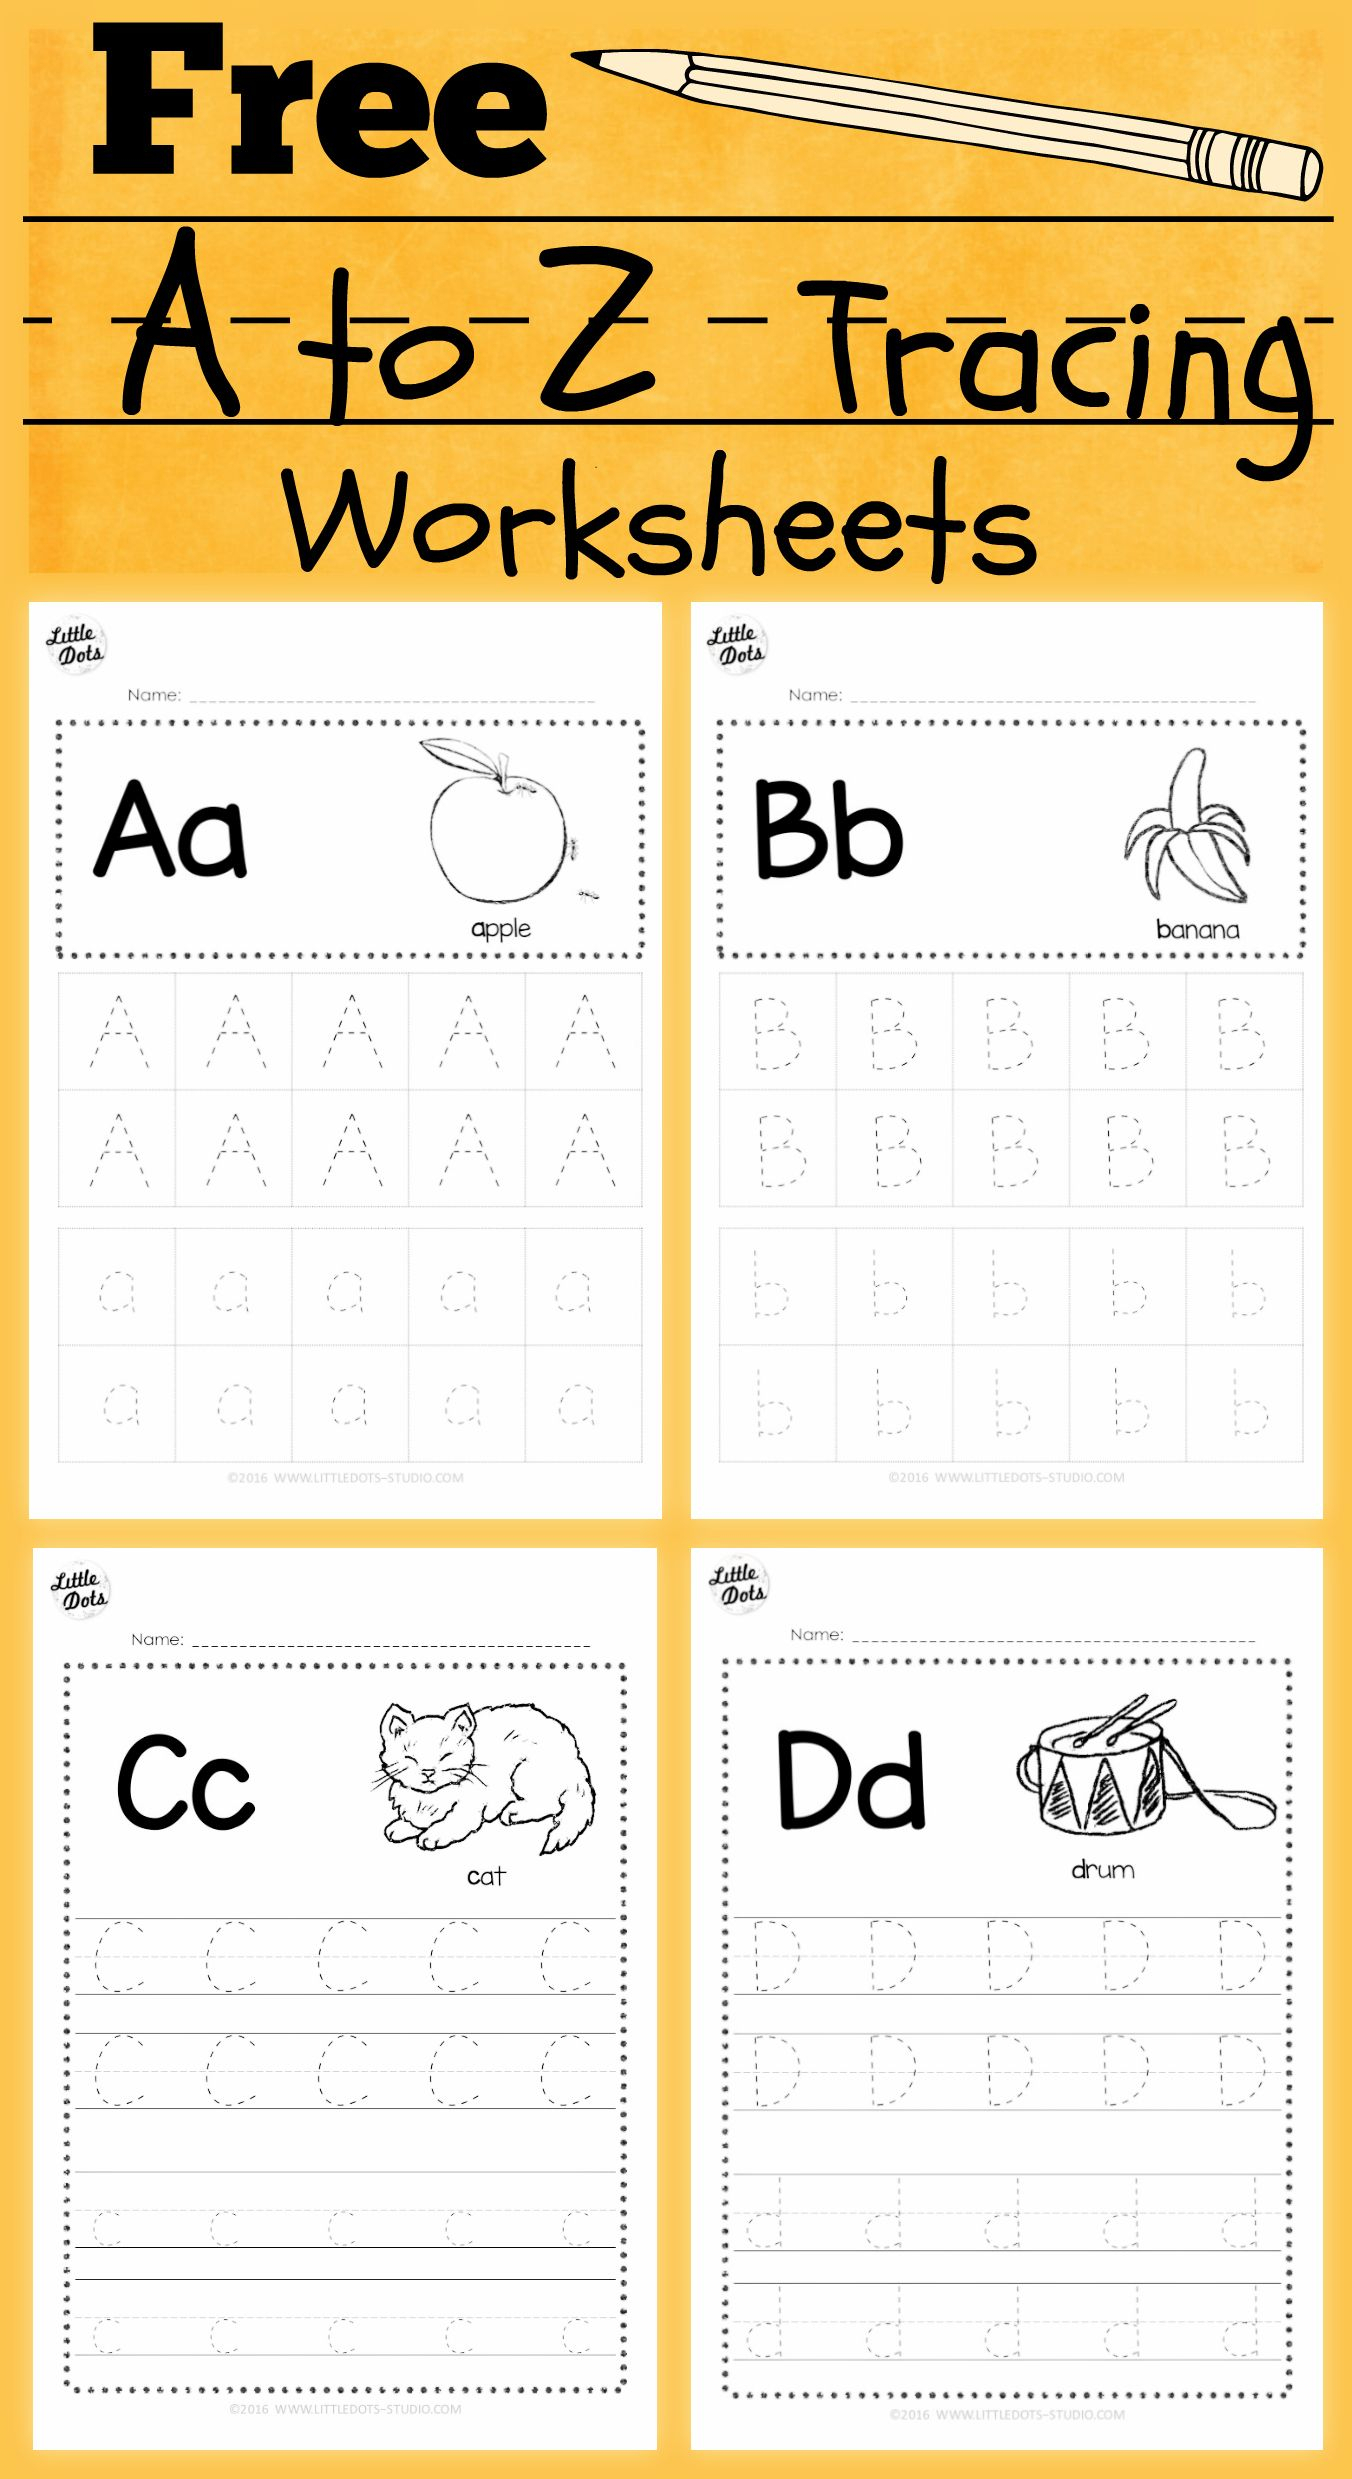 Download Free Alphabet Tracing Worksheets For Letter A To Z with Letter Z Worksheets Sparklebox